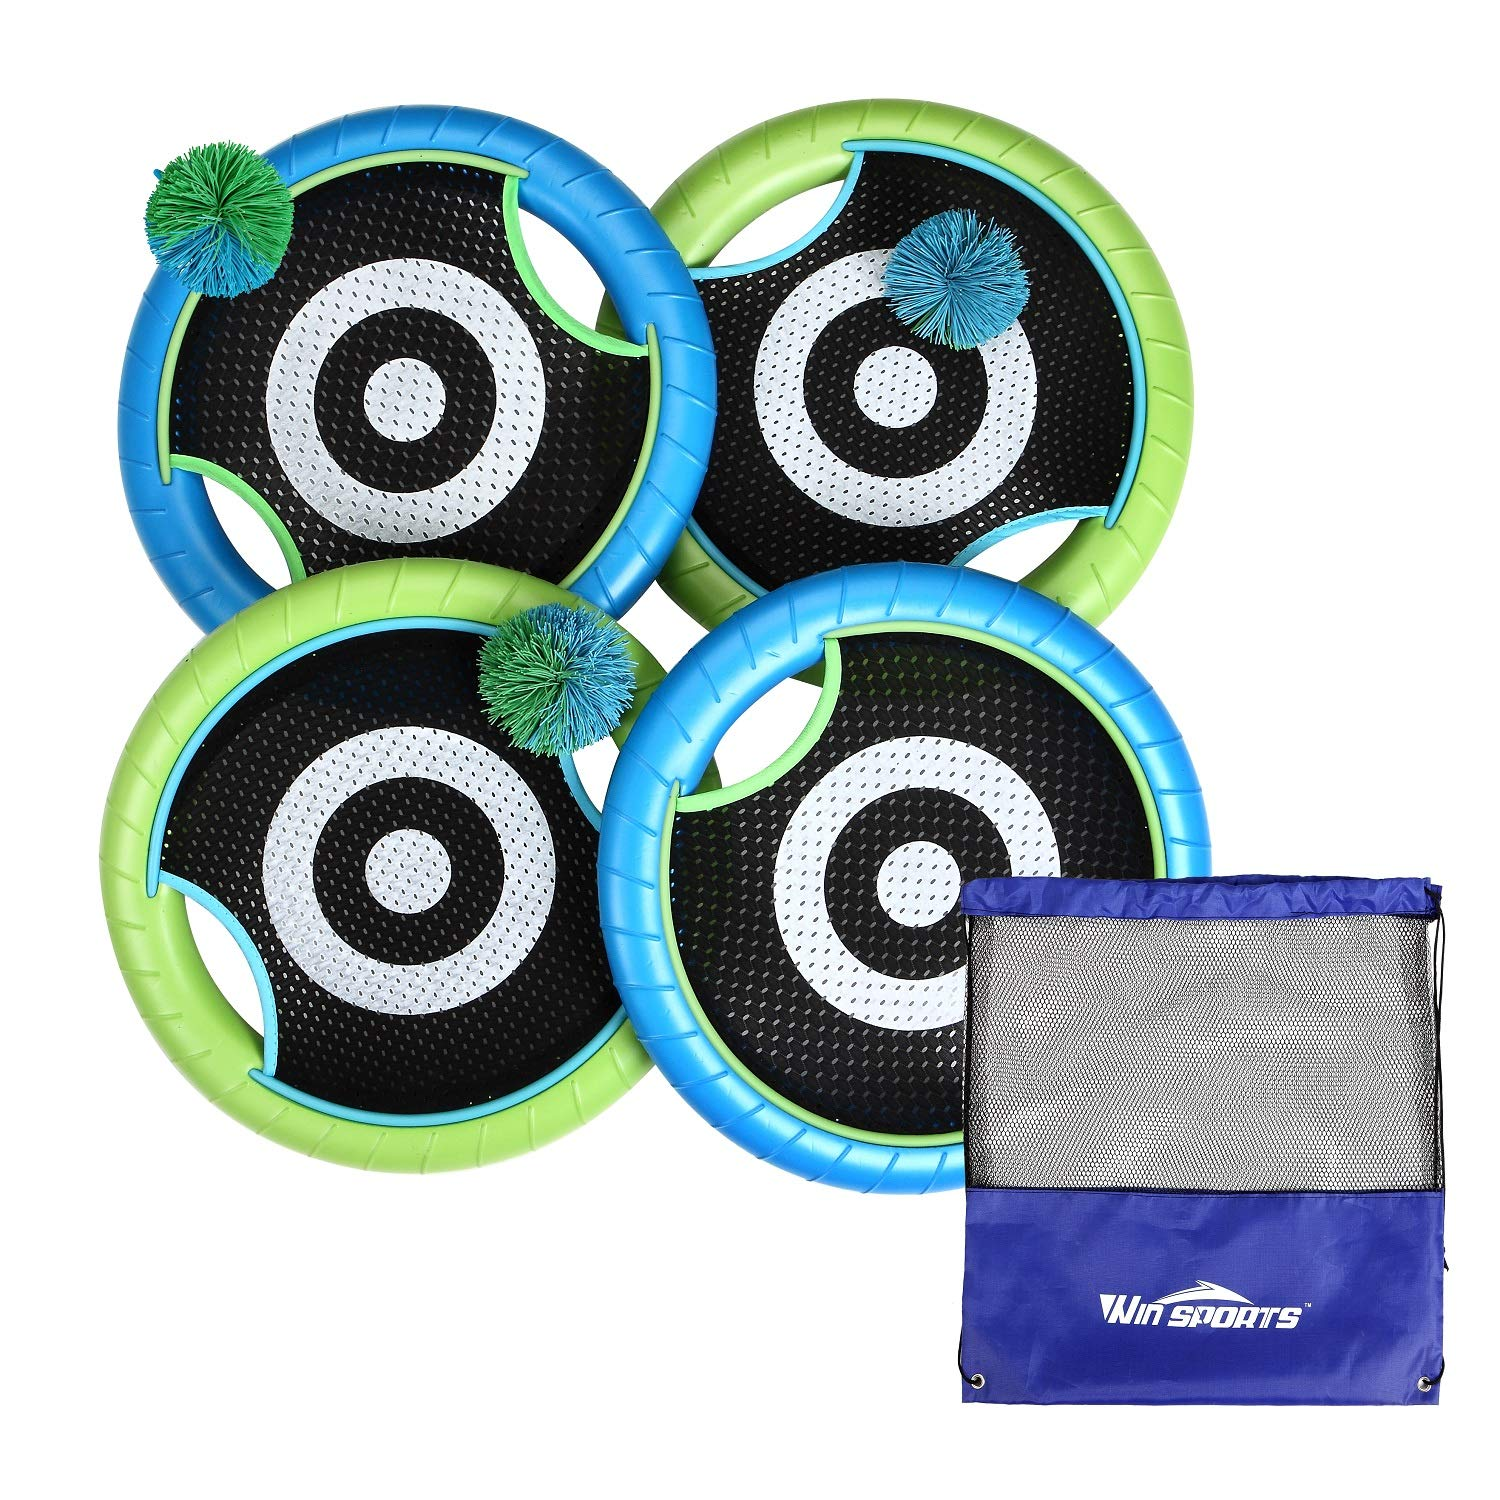 Win SPORTS Outdoor Trampoline Paddle Ball Set for 4 Players - Includes 4 Rackets, 3 Rubber String Balls,1 Storage Bag - Outdoor Family Camping Game for Kids, Adults, and Couples by Win SPORTS